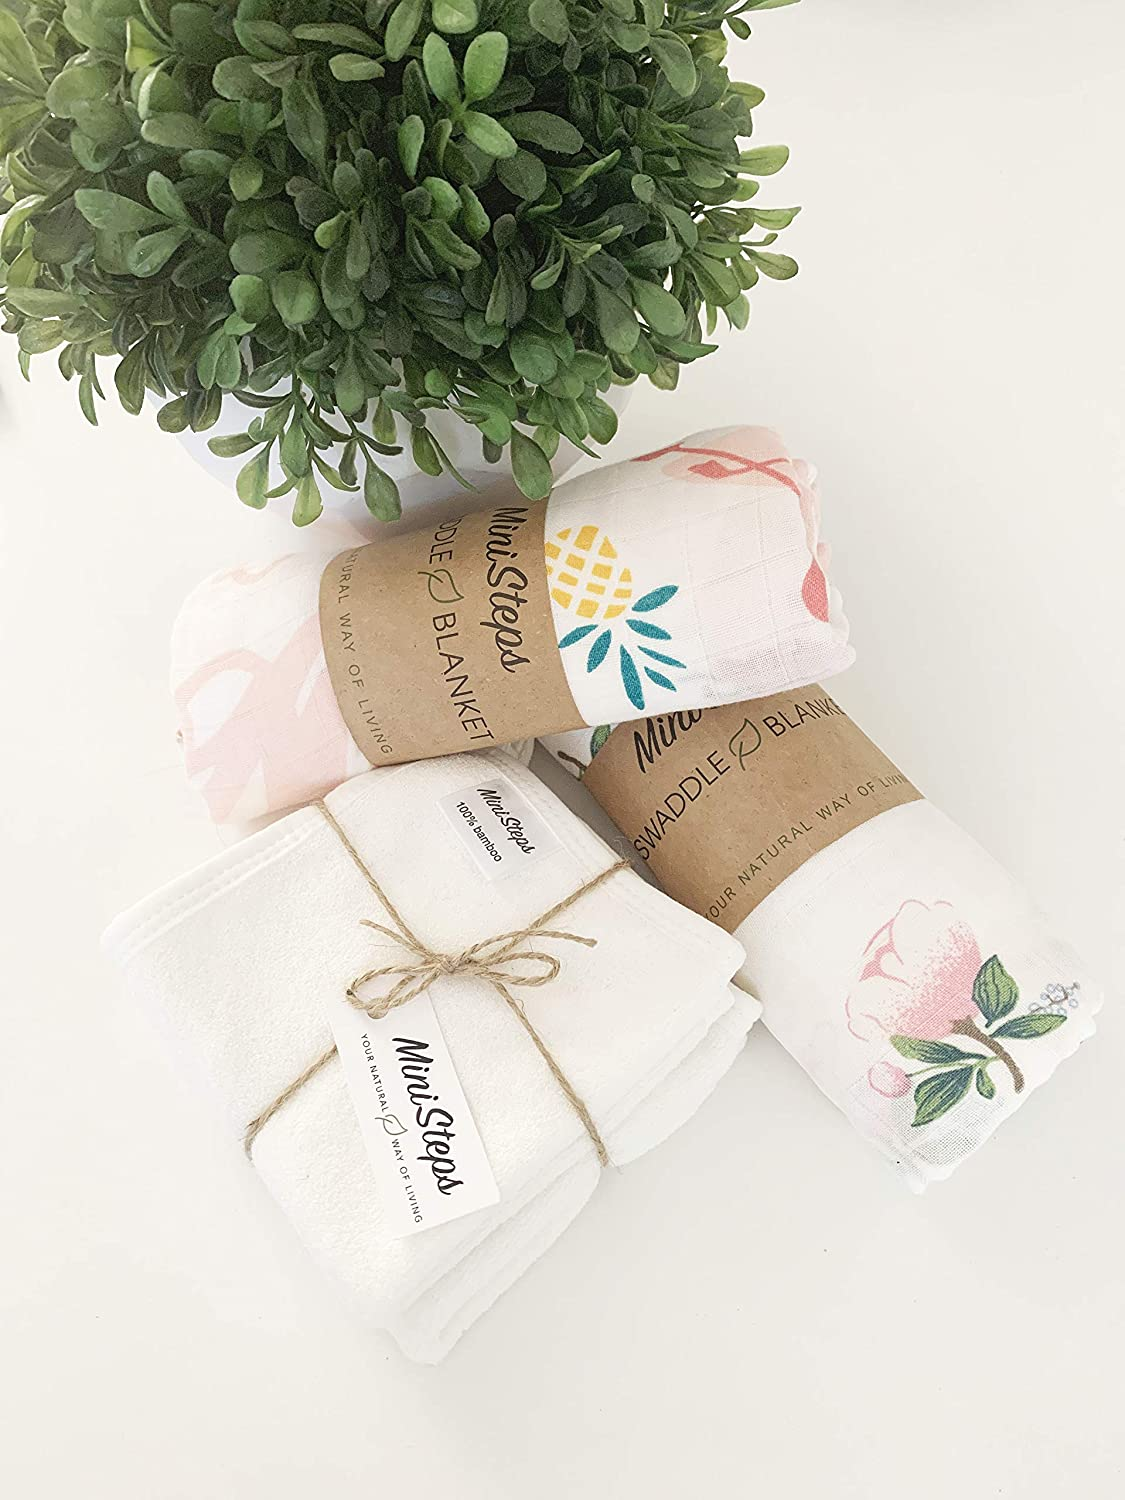 Super Soft and Breathable Baby Wrap Baby Shower Gift Baby Sho Bio Muslin Swaddle Blanket ORGANIC Cotton MiniSteps Muslin Blanket Nursing Cover Bamboo Swaddle Blanket Large Muslin Burp Cloth Eco-Friendly and Hypoallergenic Receiving Blanket